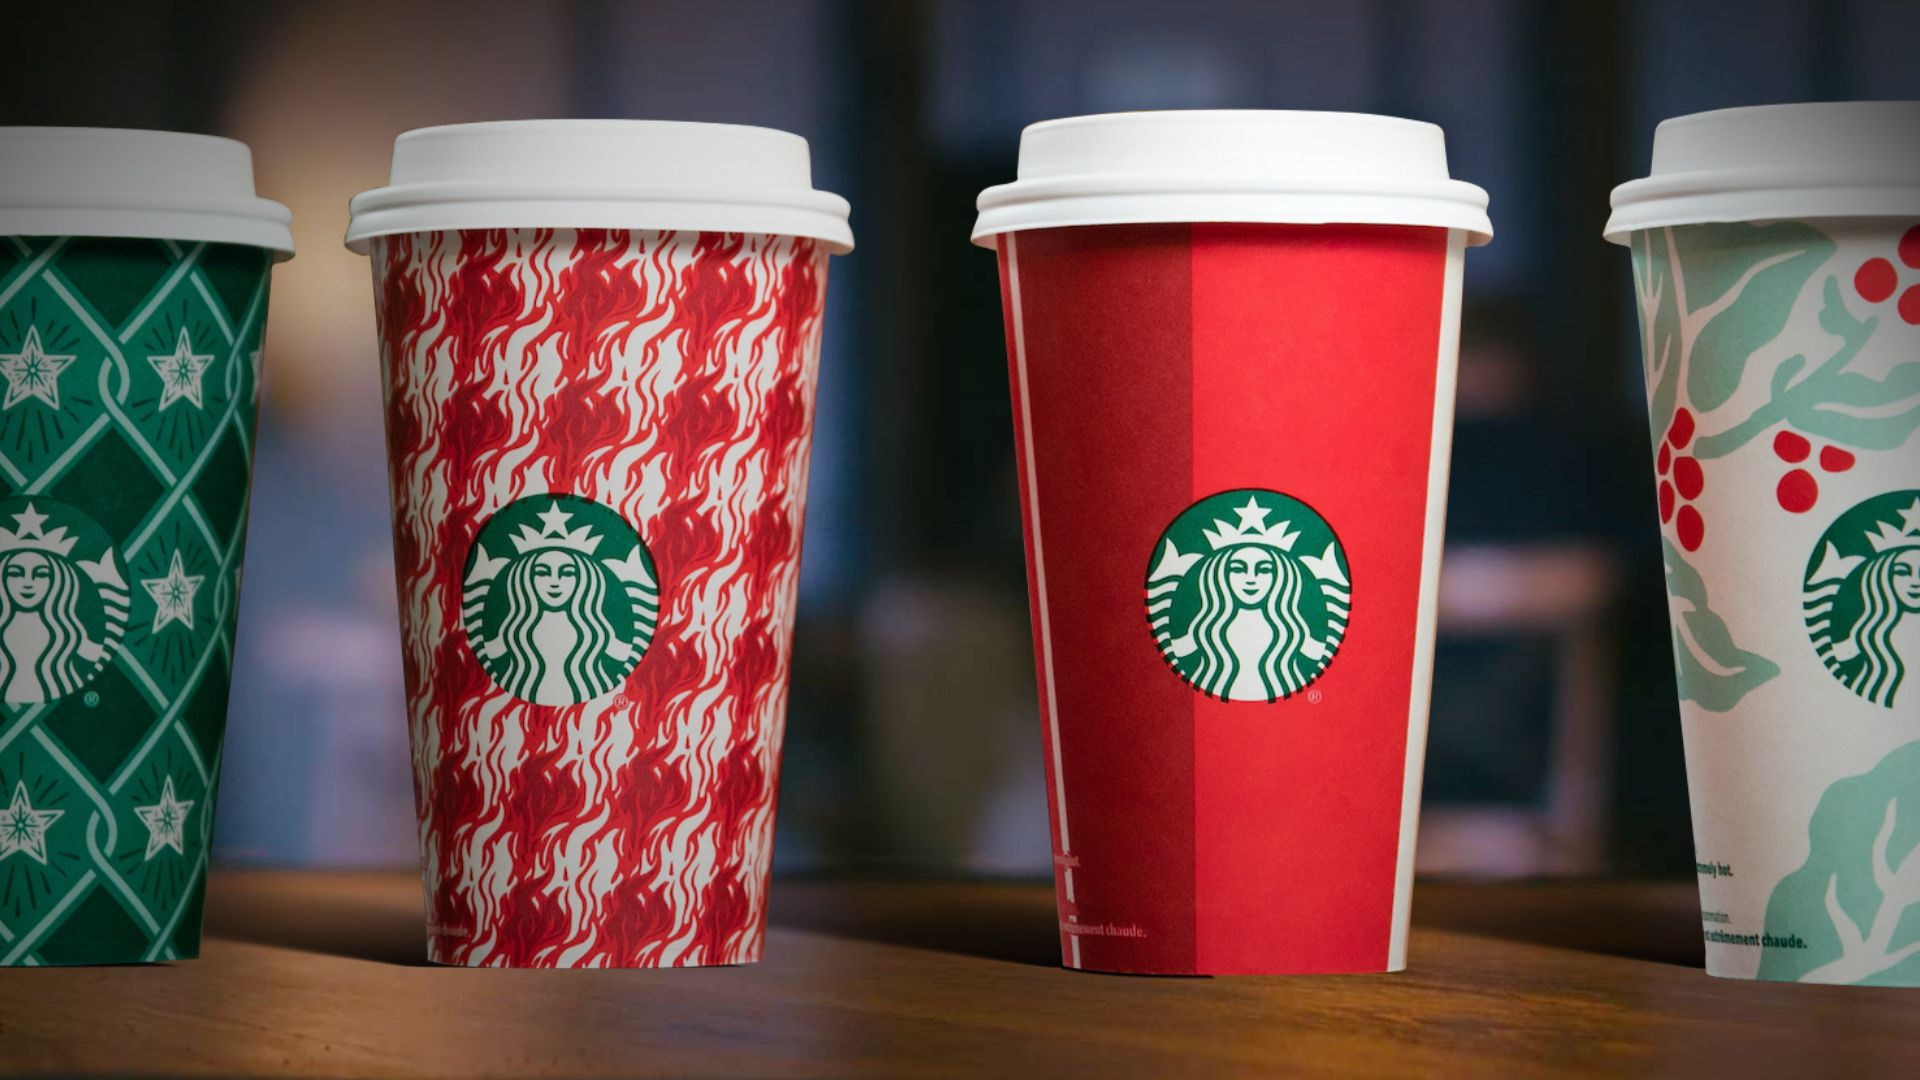 74057c91f6d Every Starbucks Holiday Cup From The Last 21 Years - Starbucks ...